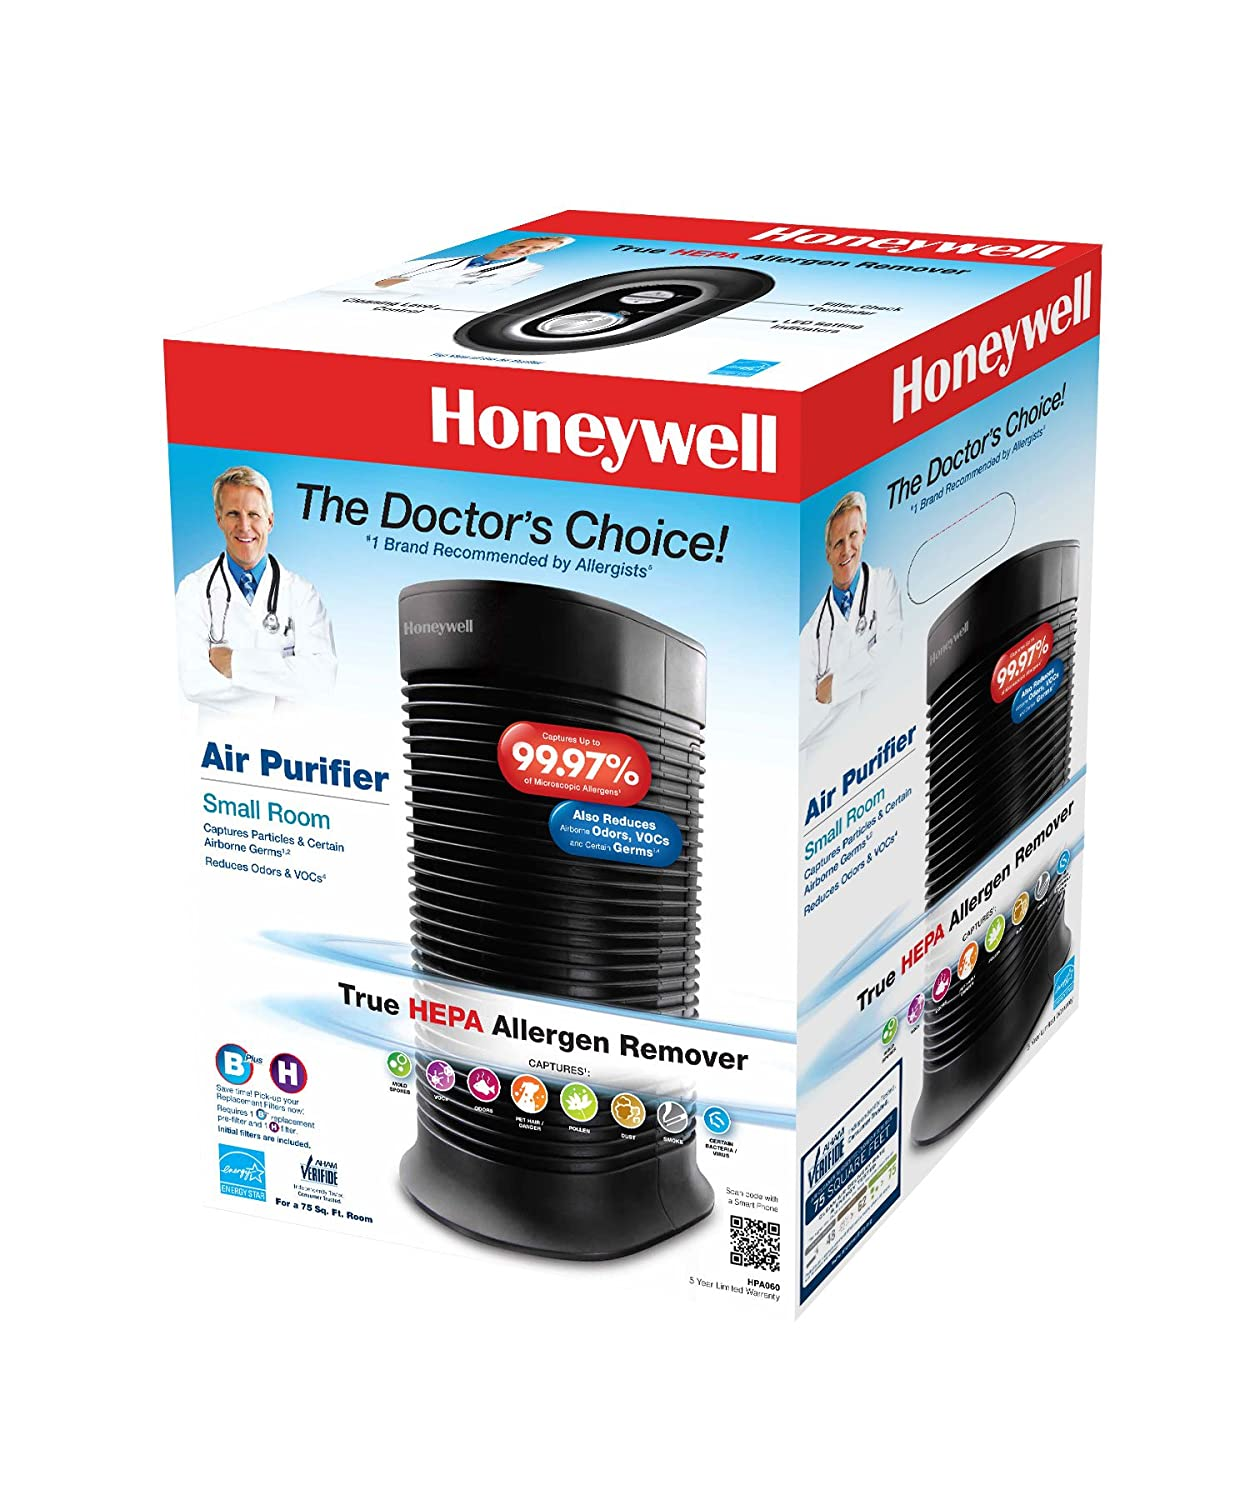 honeywell hpa060 review